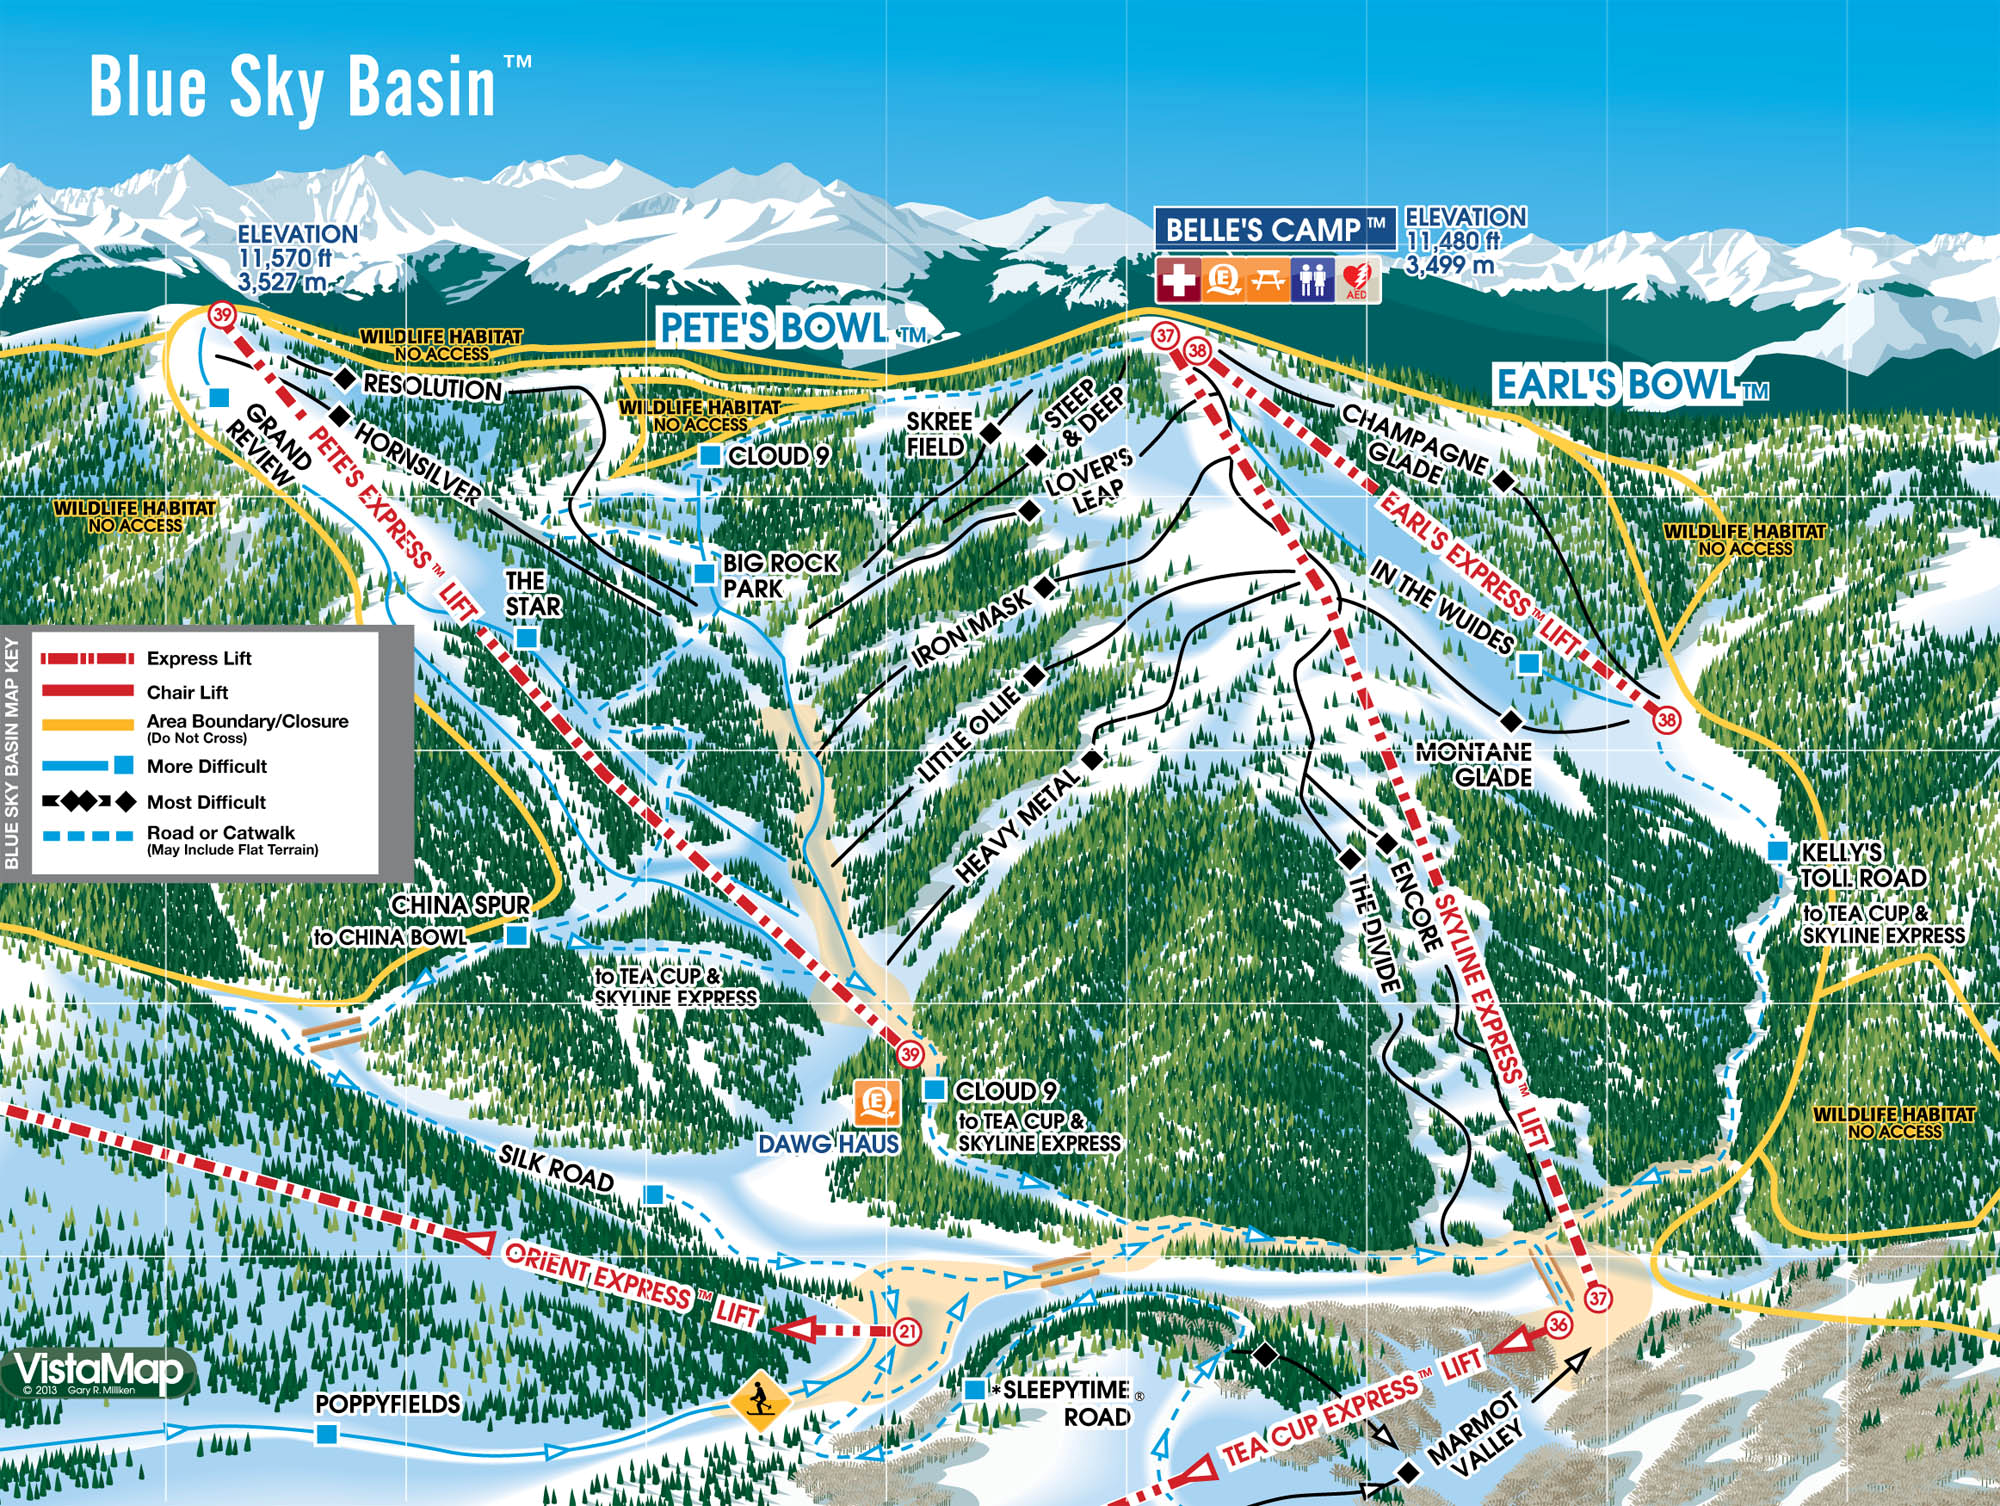 the ultimate ski guide to vail colorado - rad season